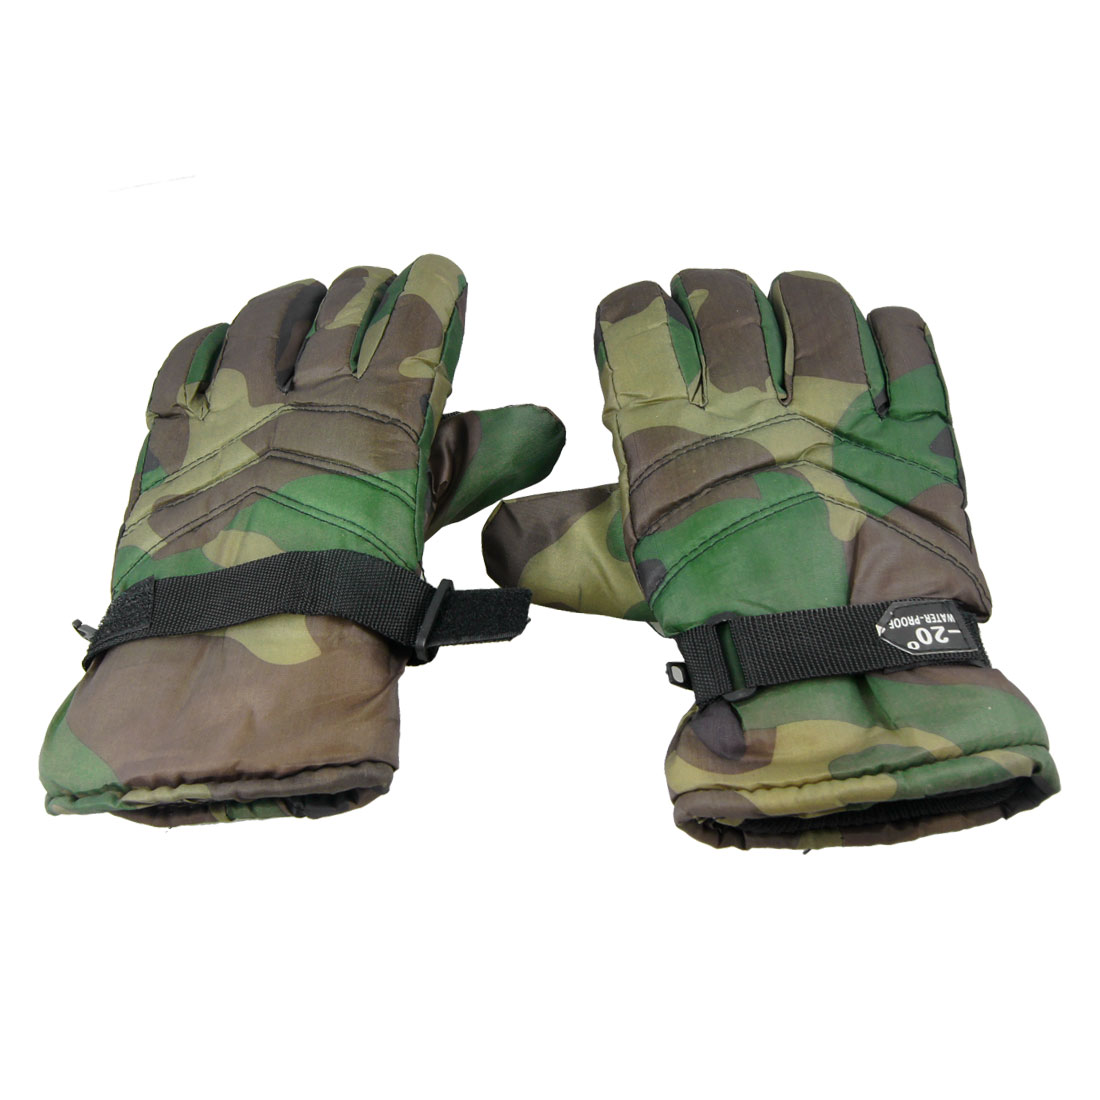 Pair Camouflage Pattern Bicycle Climbing Skiing Gloves for Man Black Army Green